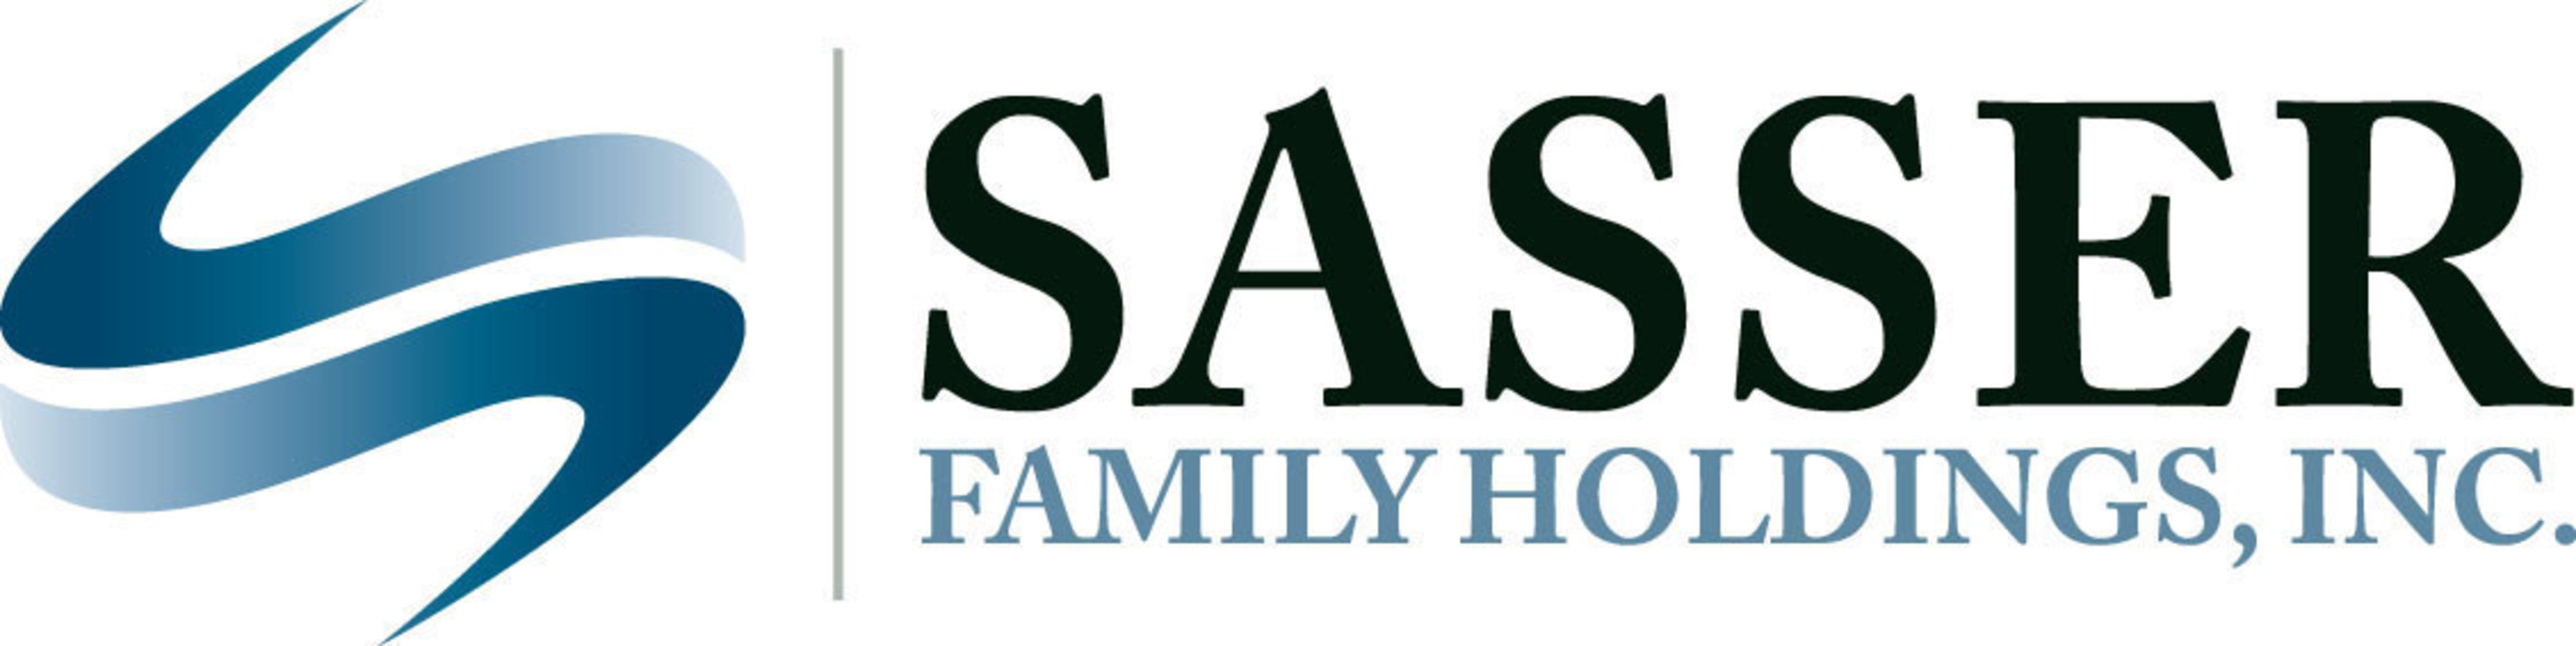 Sasser Family Holdings Announces Strategic Acquisition and Update on Holdings